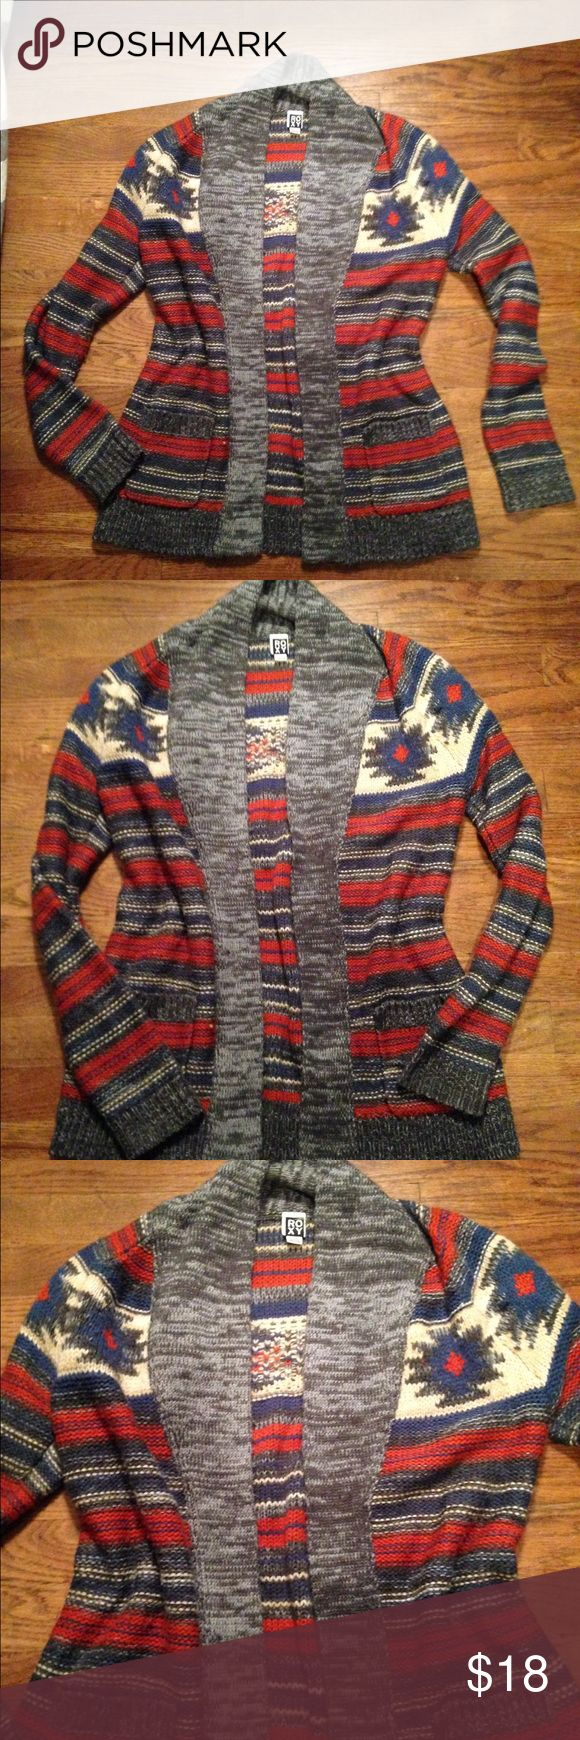 ROXY cardigan sweater ROXY cozy cardi sweater!  Beautiful colors... soft and cozy. In awesome condition! Roxy Sweaters Cardigans